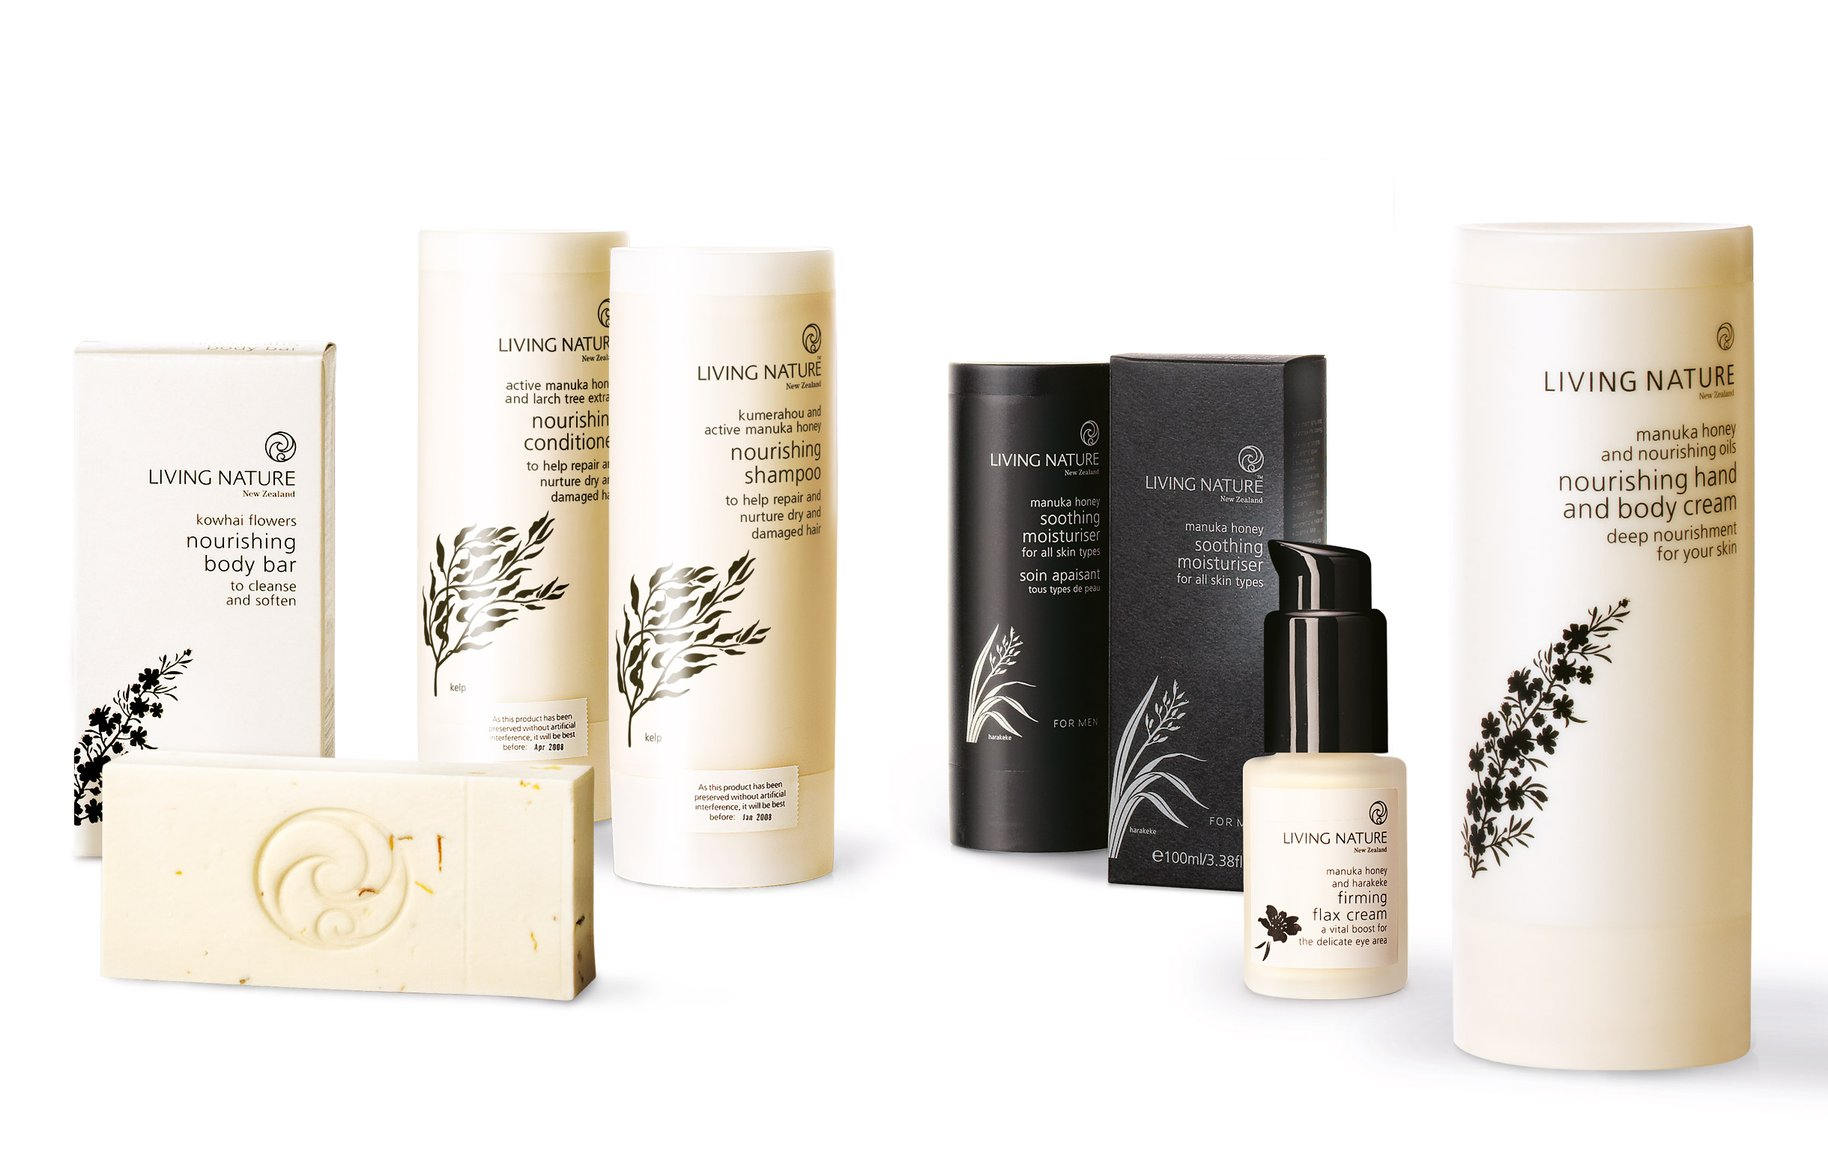 Living Nature product range packaging